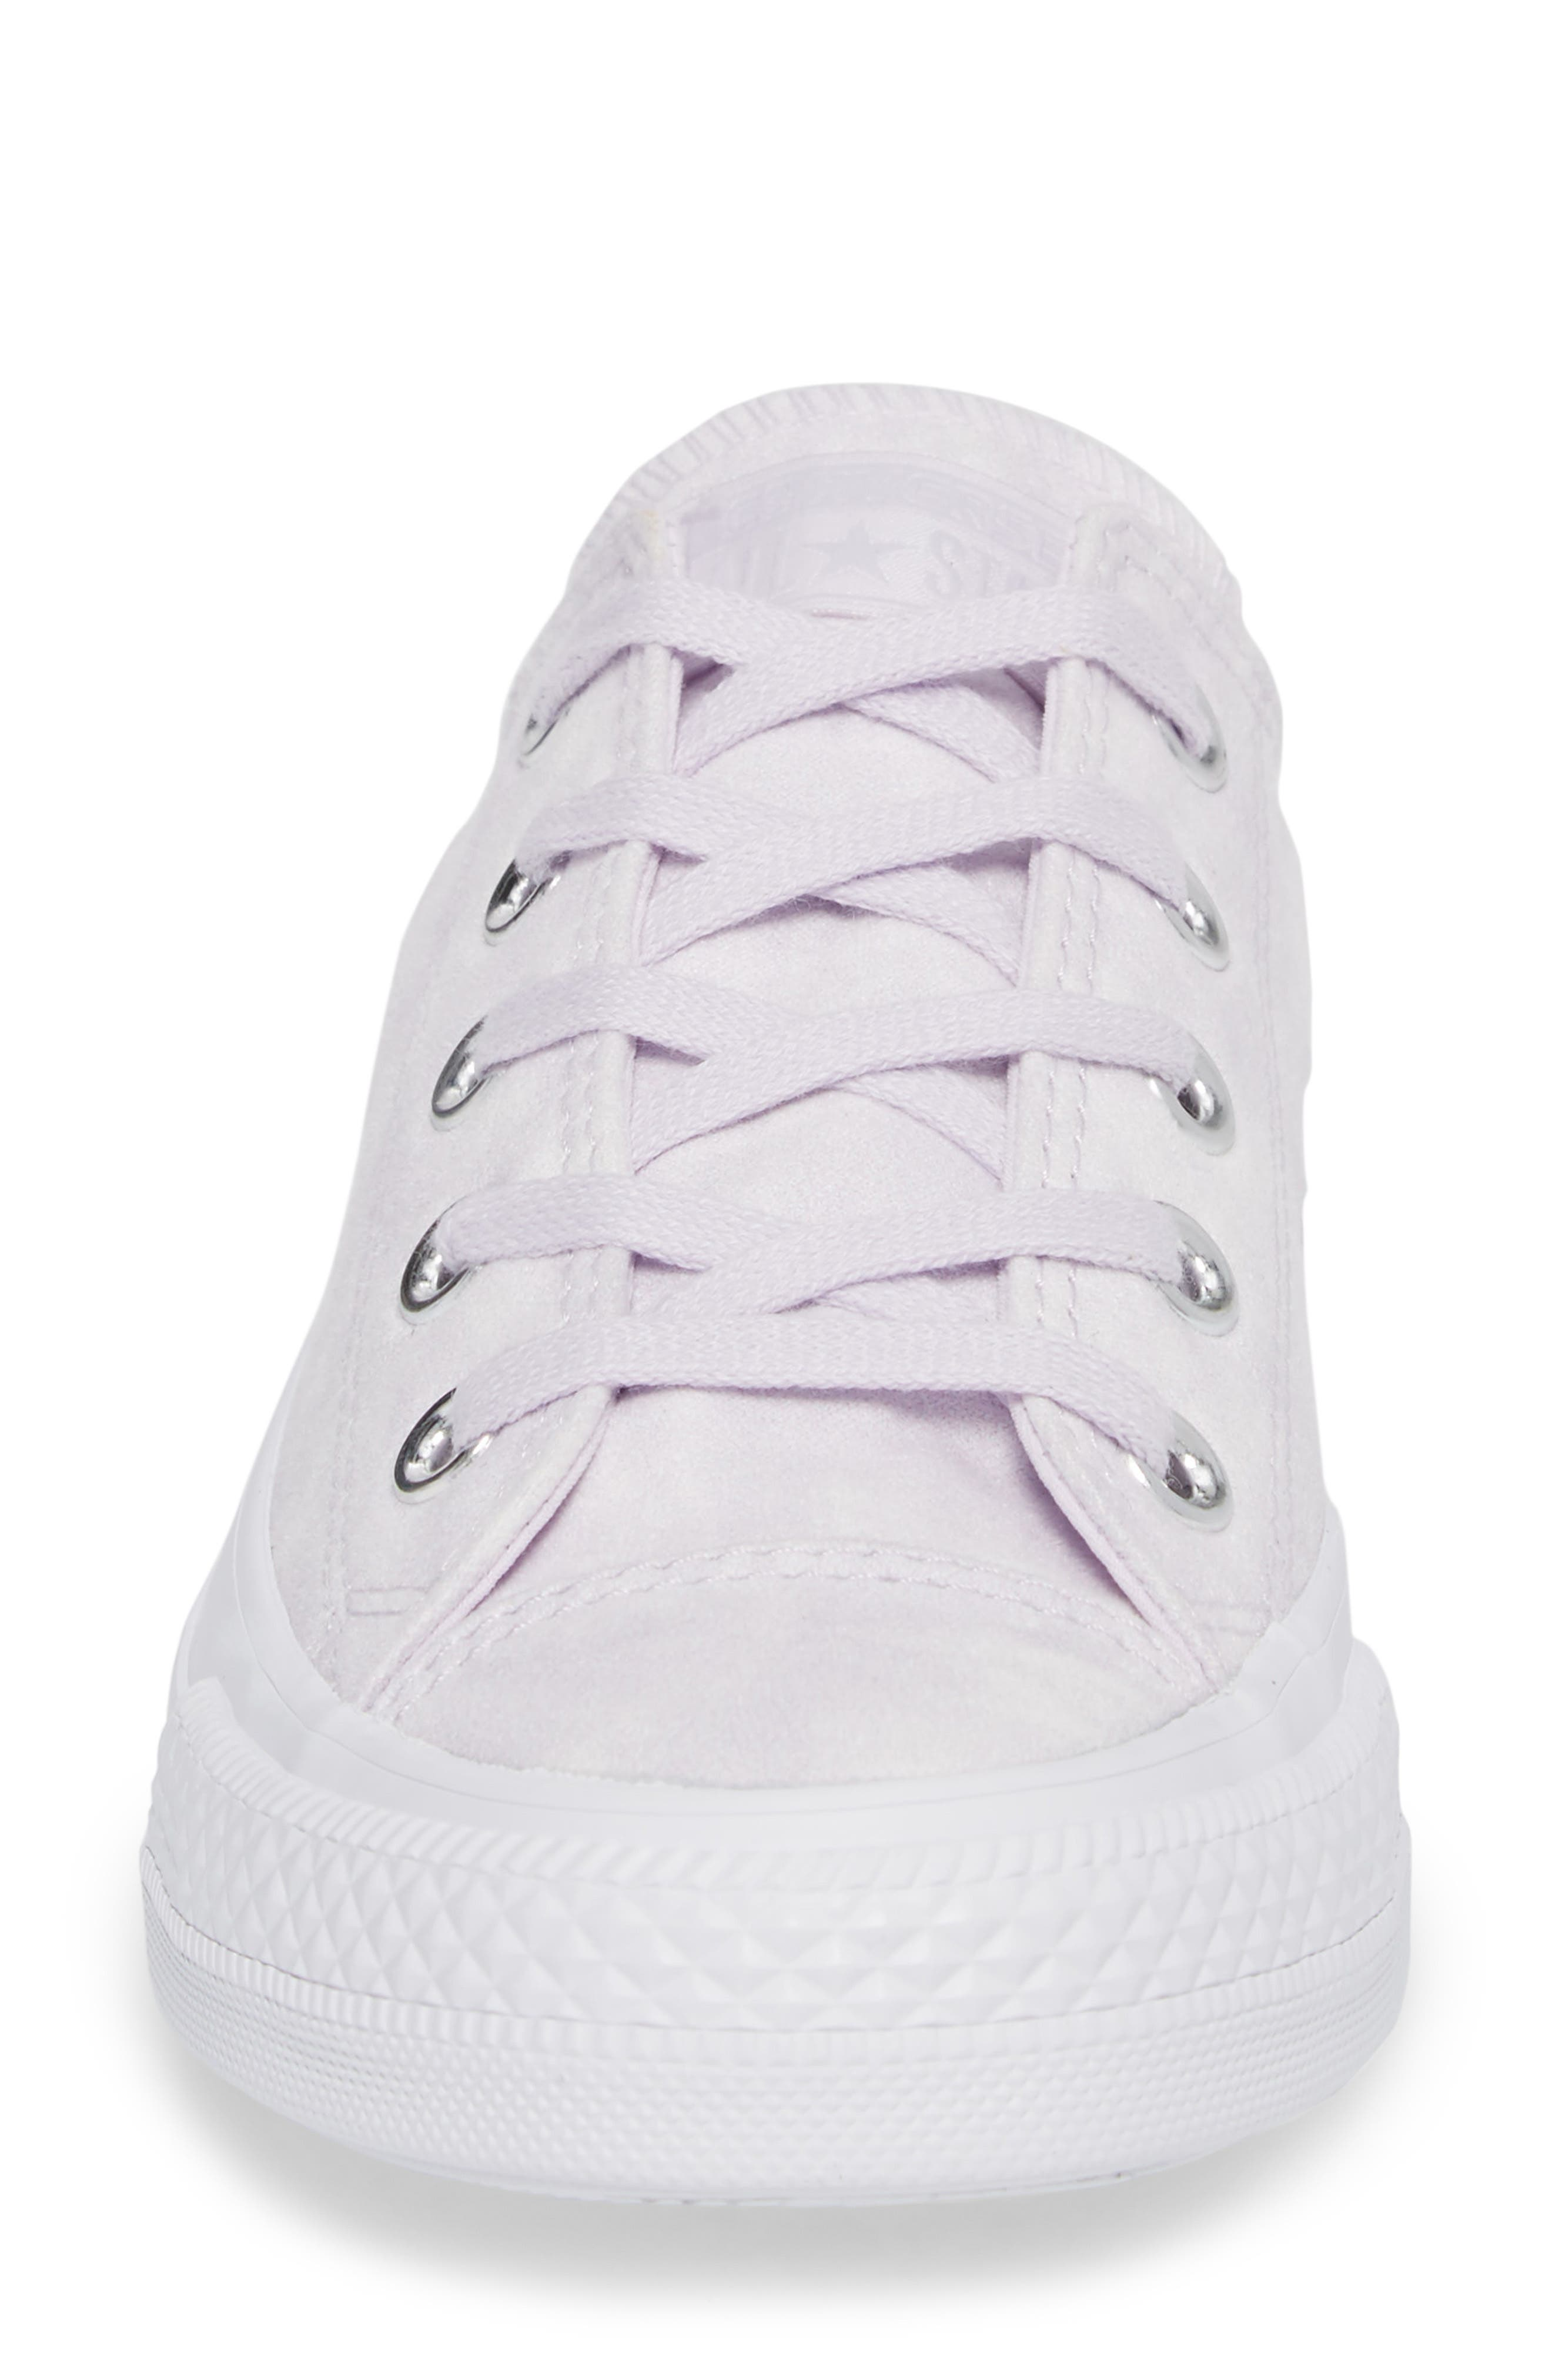 Chuck Taylor<sup>®</sup> All Star<sup>®</sup> Peached Low Top Sneaker,                             Alternate thumbnail 8, color,